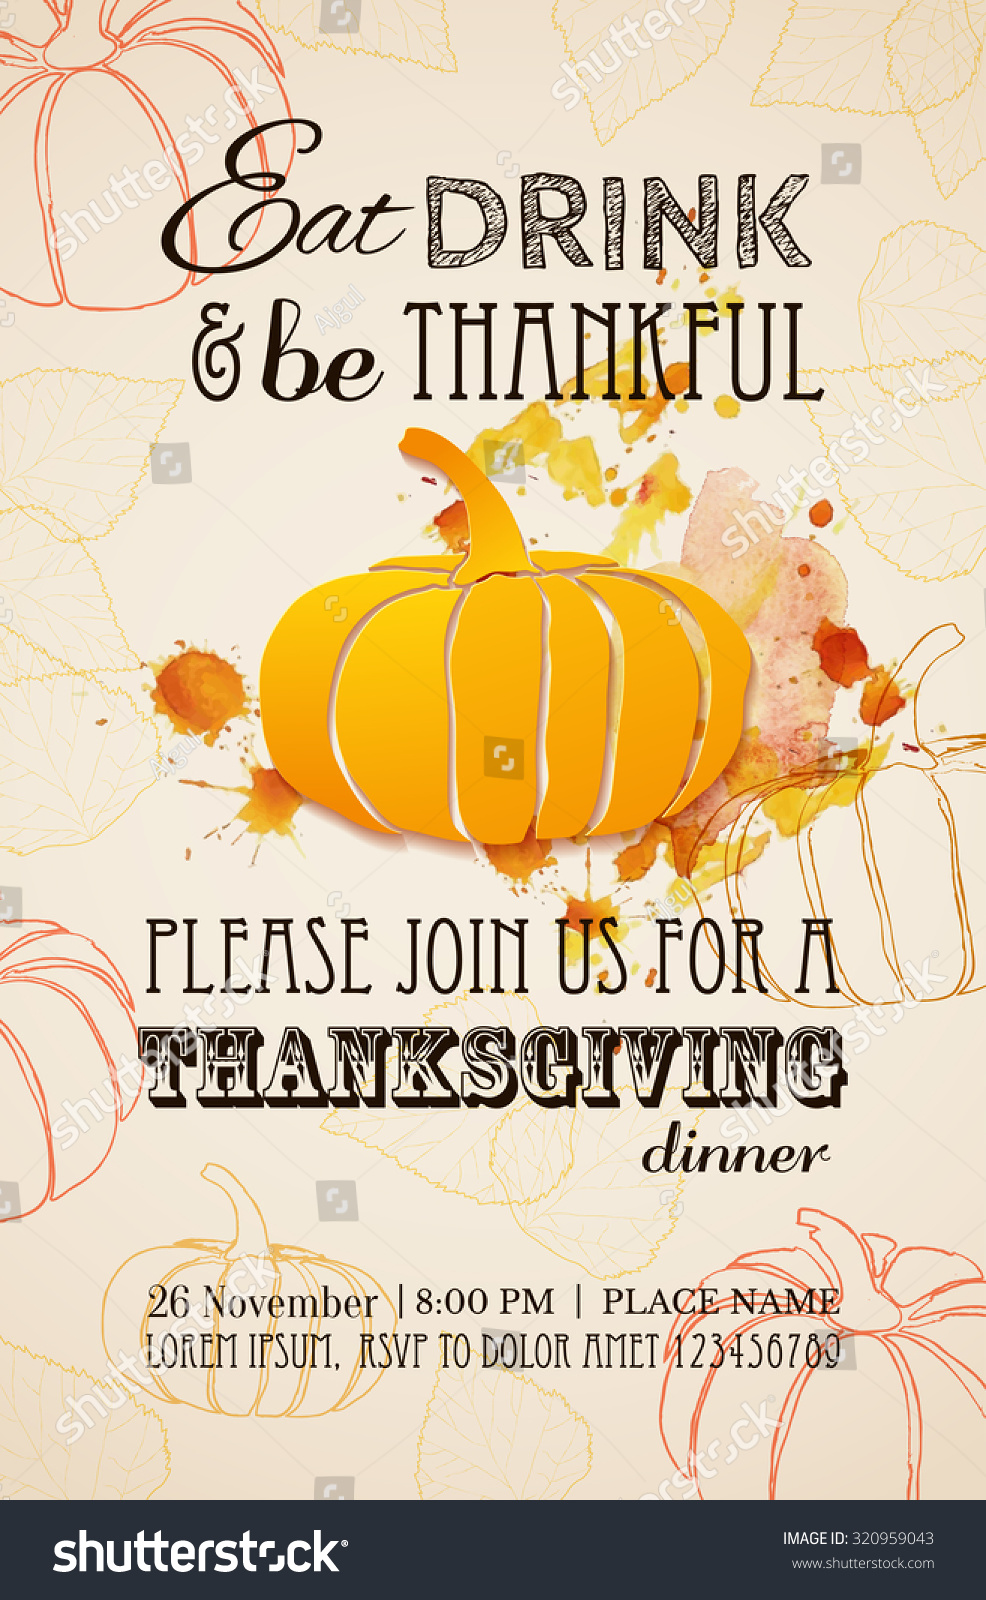 Invitation Design Thanksgiving Dinner Party Vector Stock Vector ...